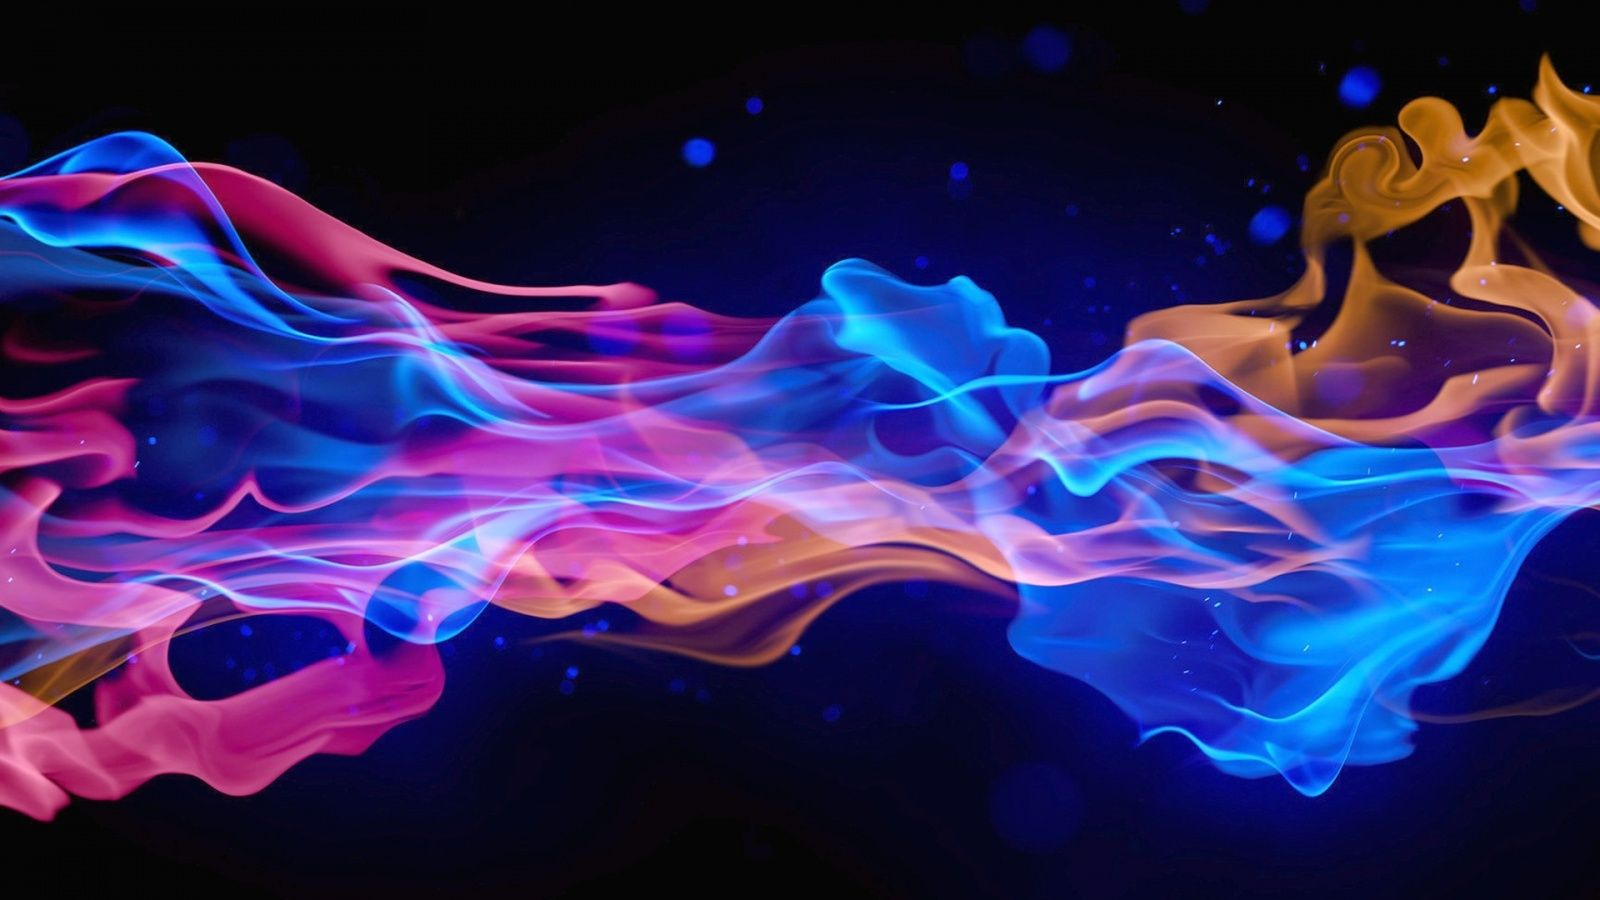 Healing With Blue Violet Flames Red Fire Wallpaper 2048x1152 Wallpapers Flames Wallpapers